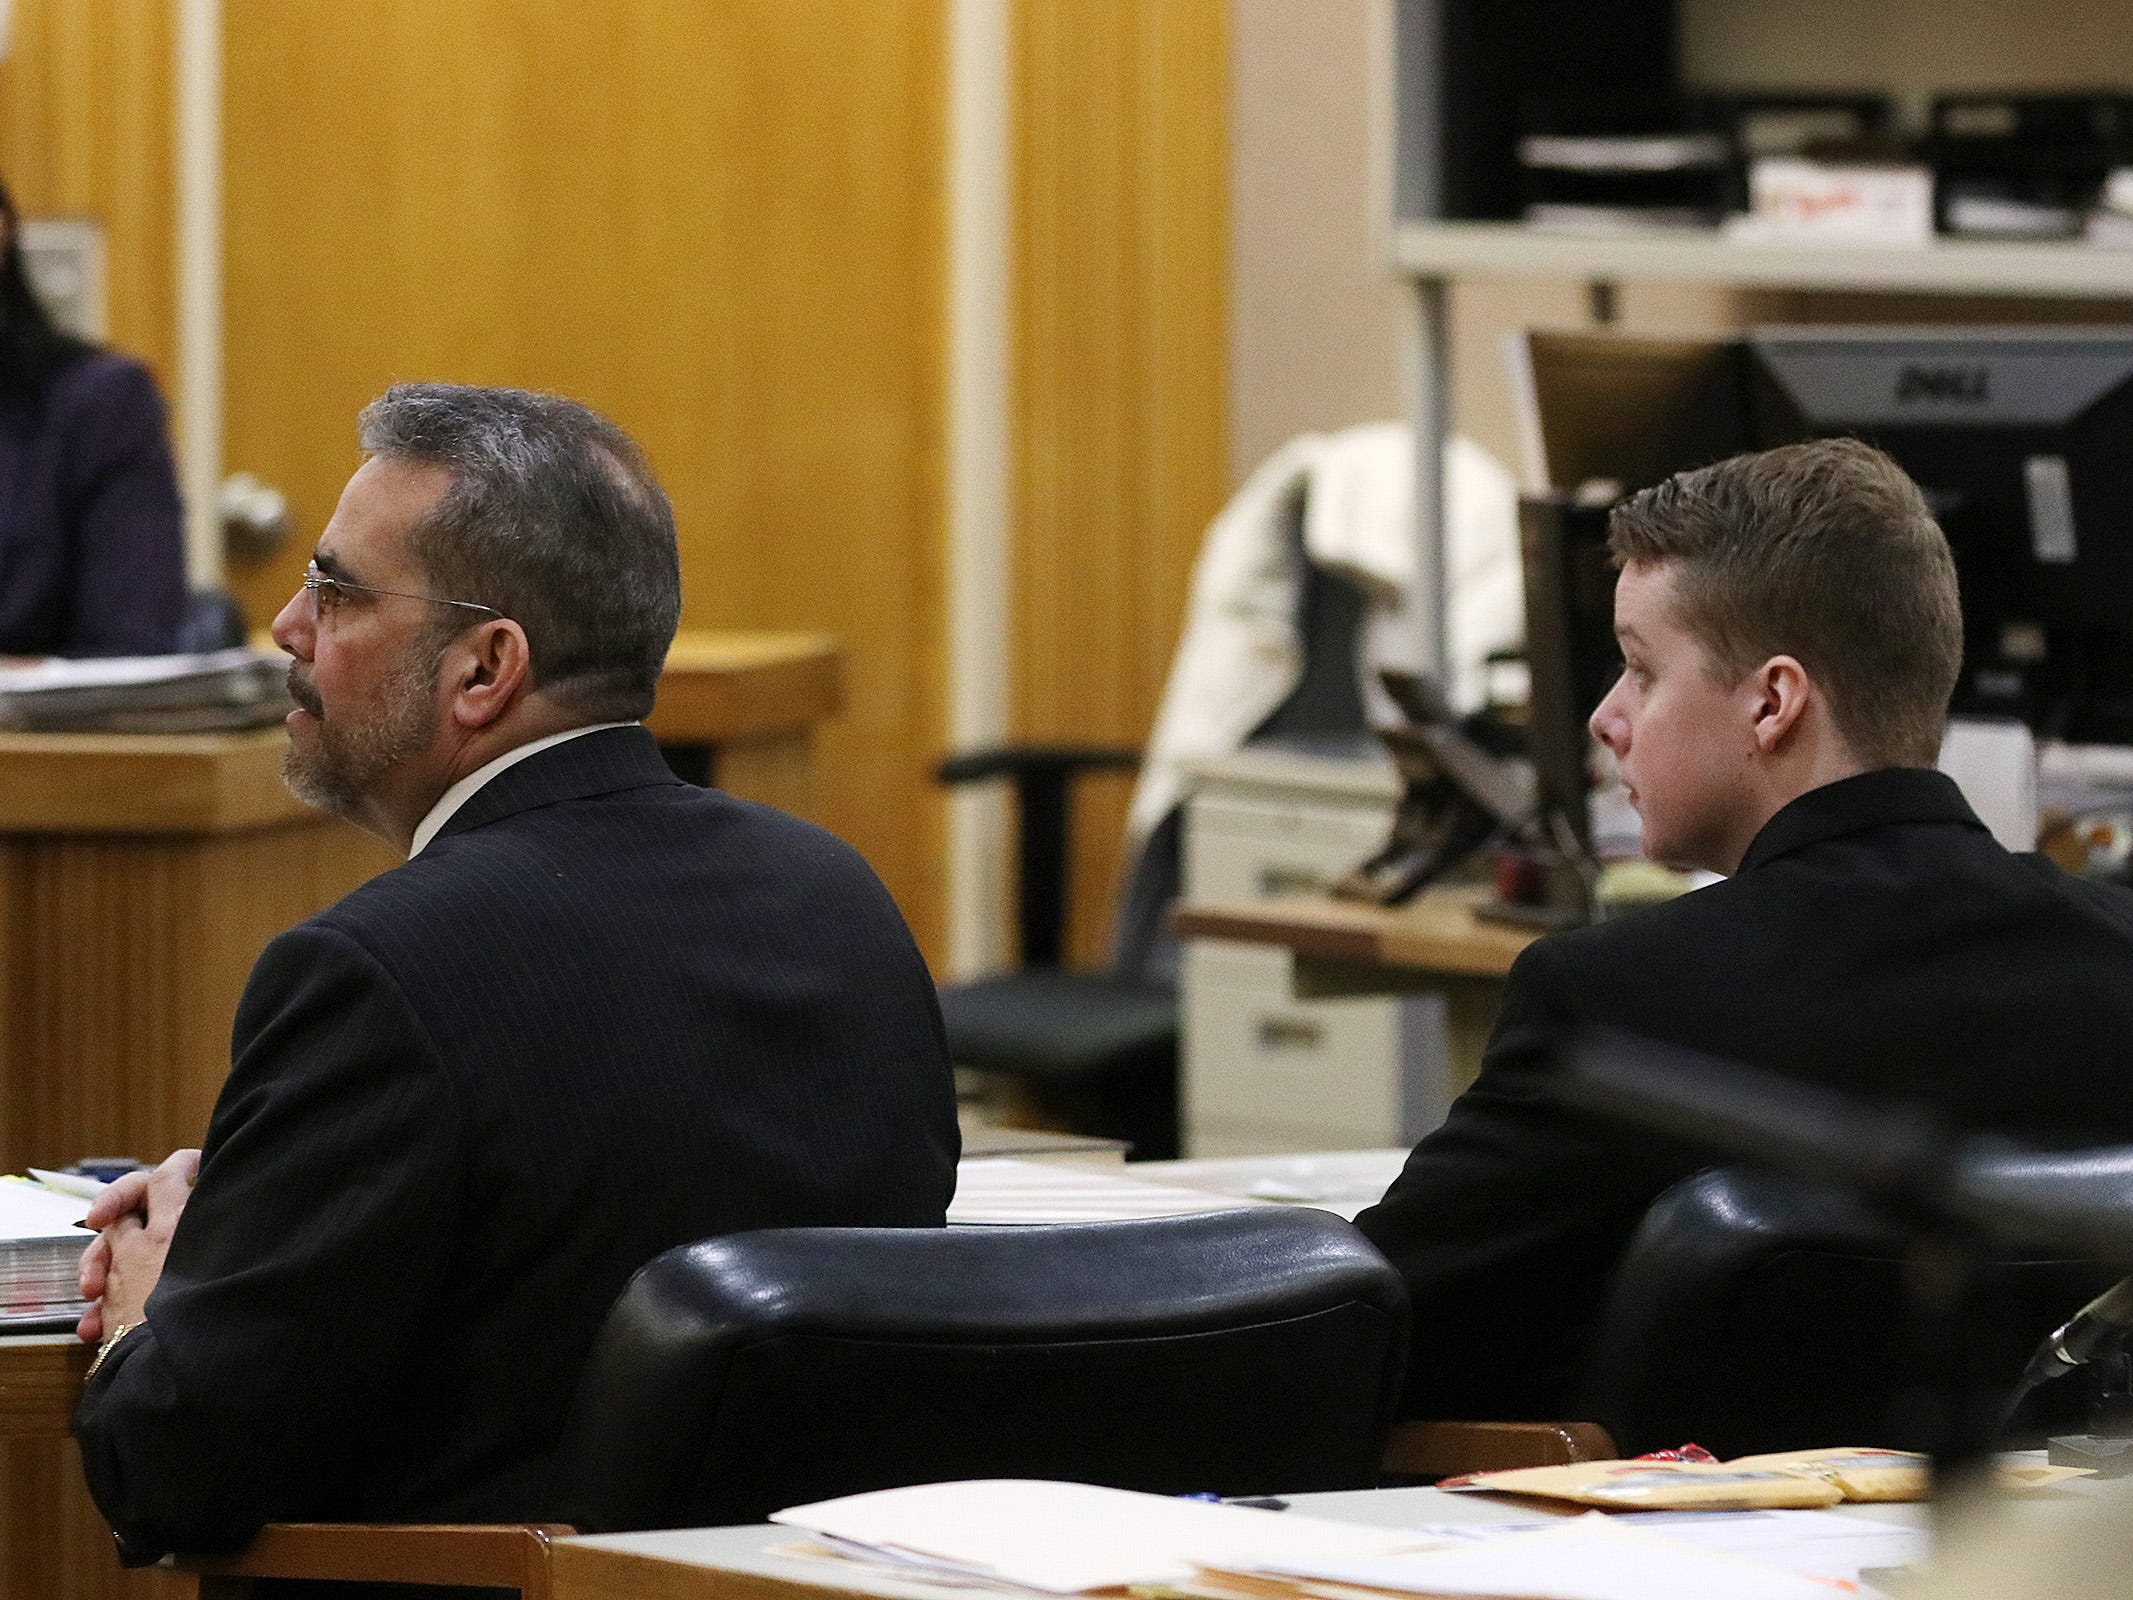 Defense attorney Carlos Diaz-Cobo and Liam McAtasney, who is charged with the murder of former high school classmate, Sarah Stern, look over at the jury during trial before Superior Court Judge Richard W. English at the Monmouth County Courthouse in Freehold, NJ Wednesday, February 13, 2019.  The jury was sent home for the day after Carlos Diaz-Cobo, the defense attorney, made a motion for a mistrial over a post made on a juror's Facebook page.